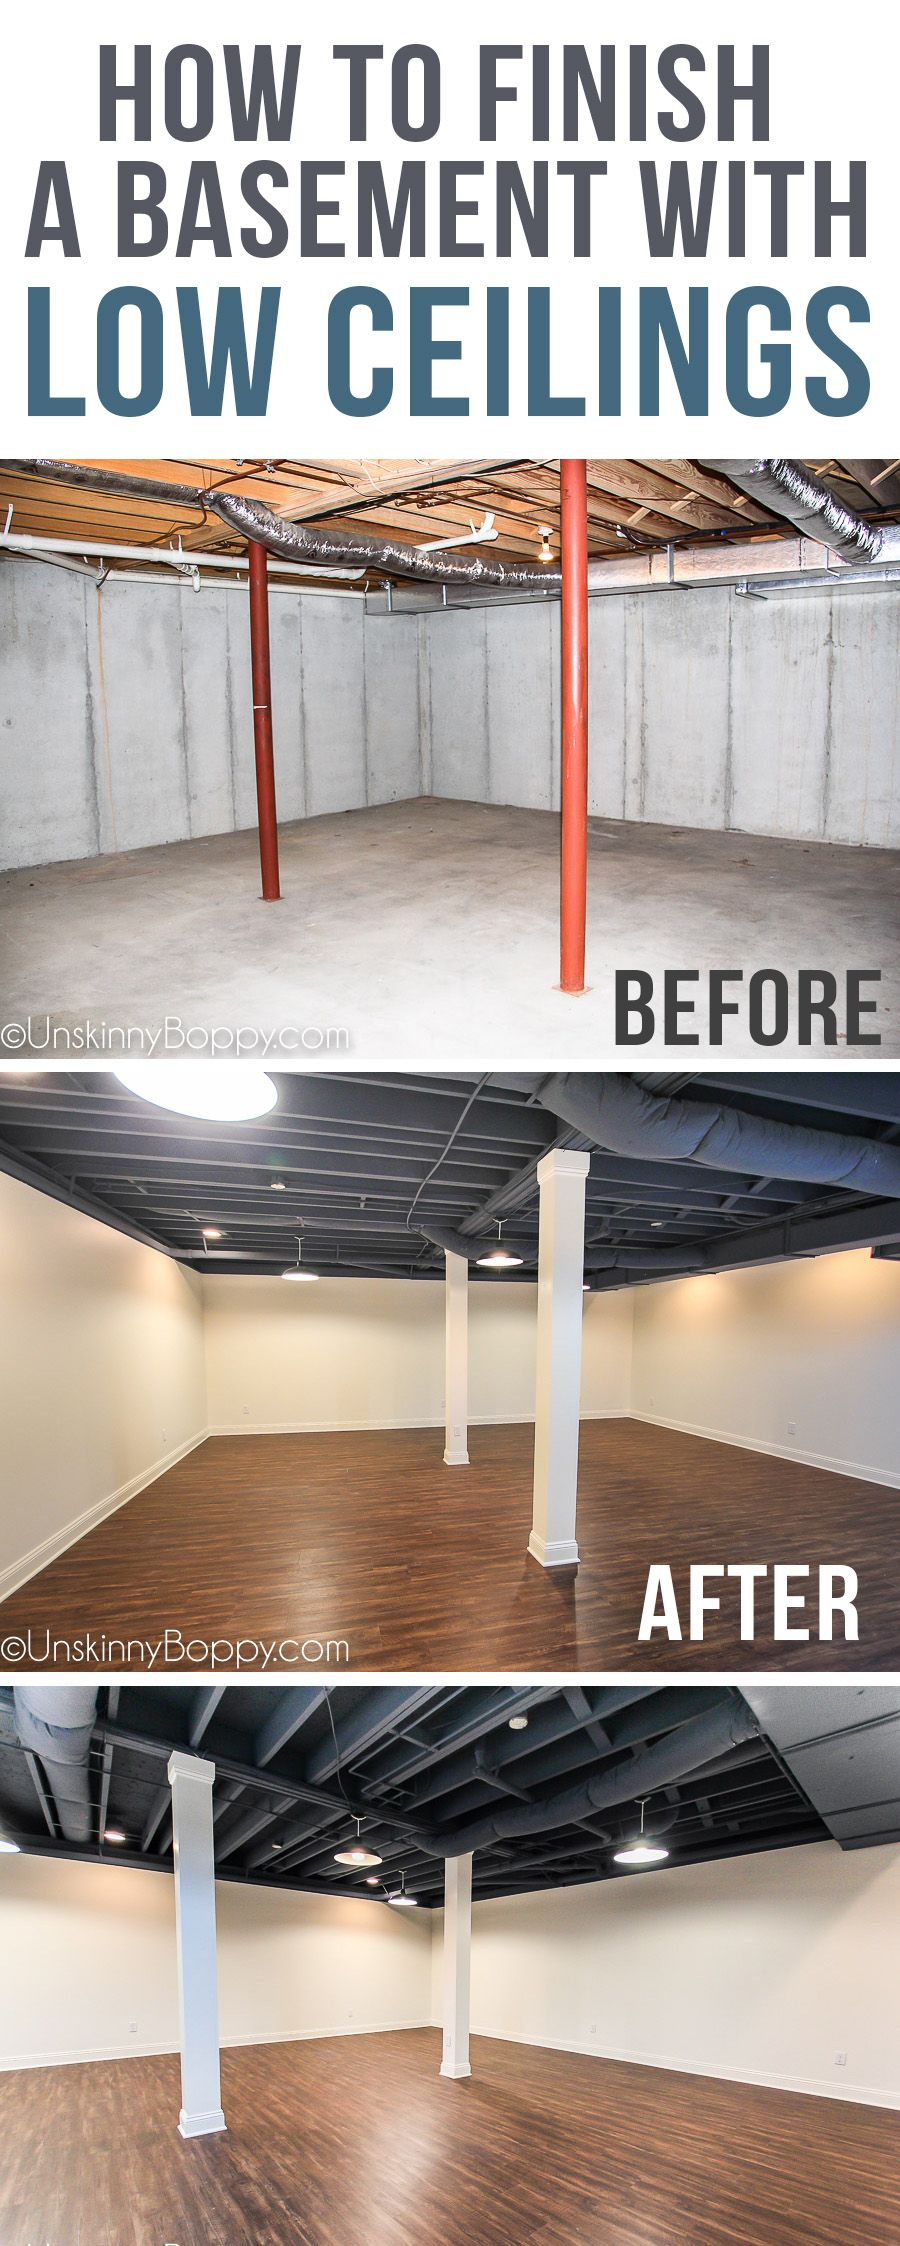 20 Amazing Unfinished Basement Ideas You Should Try | Basements ...